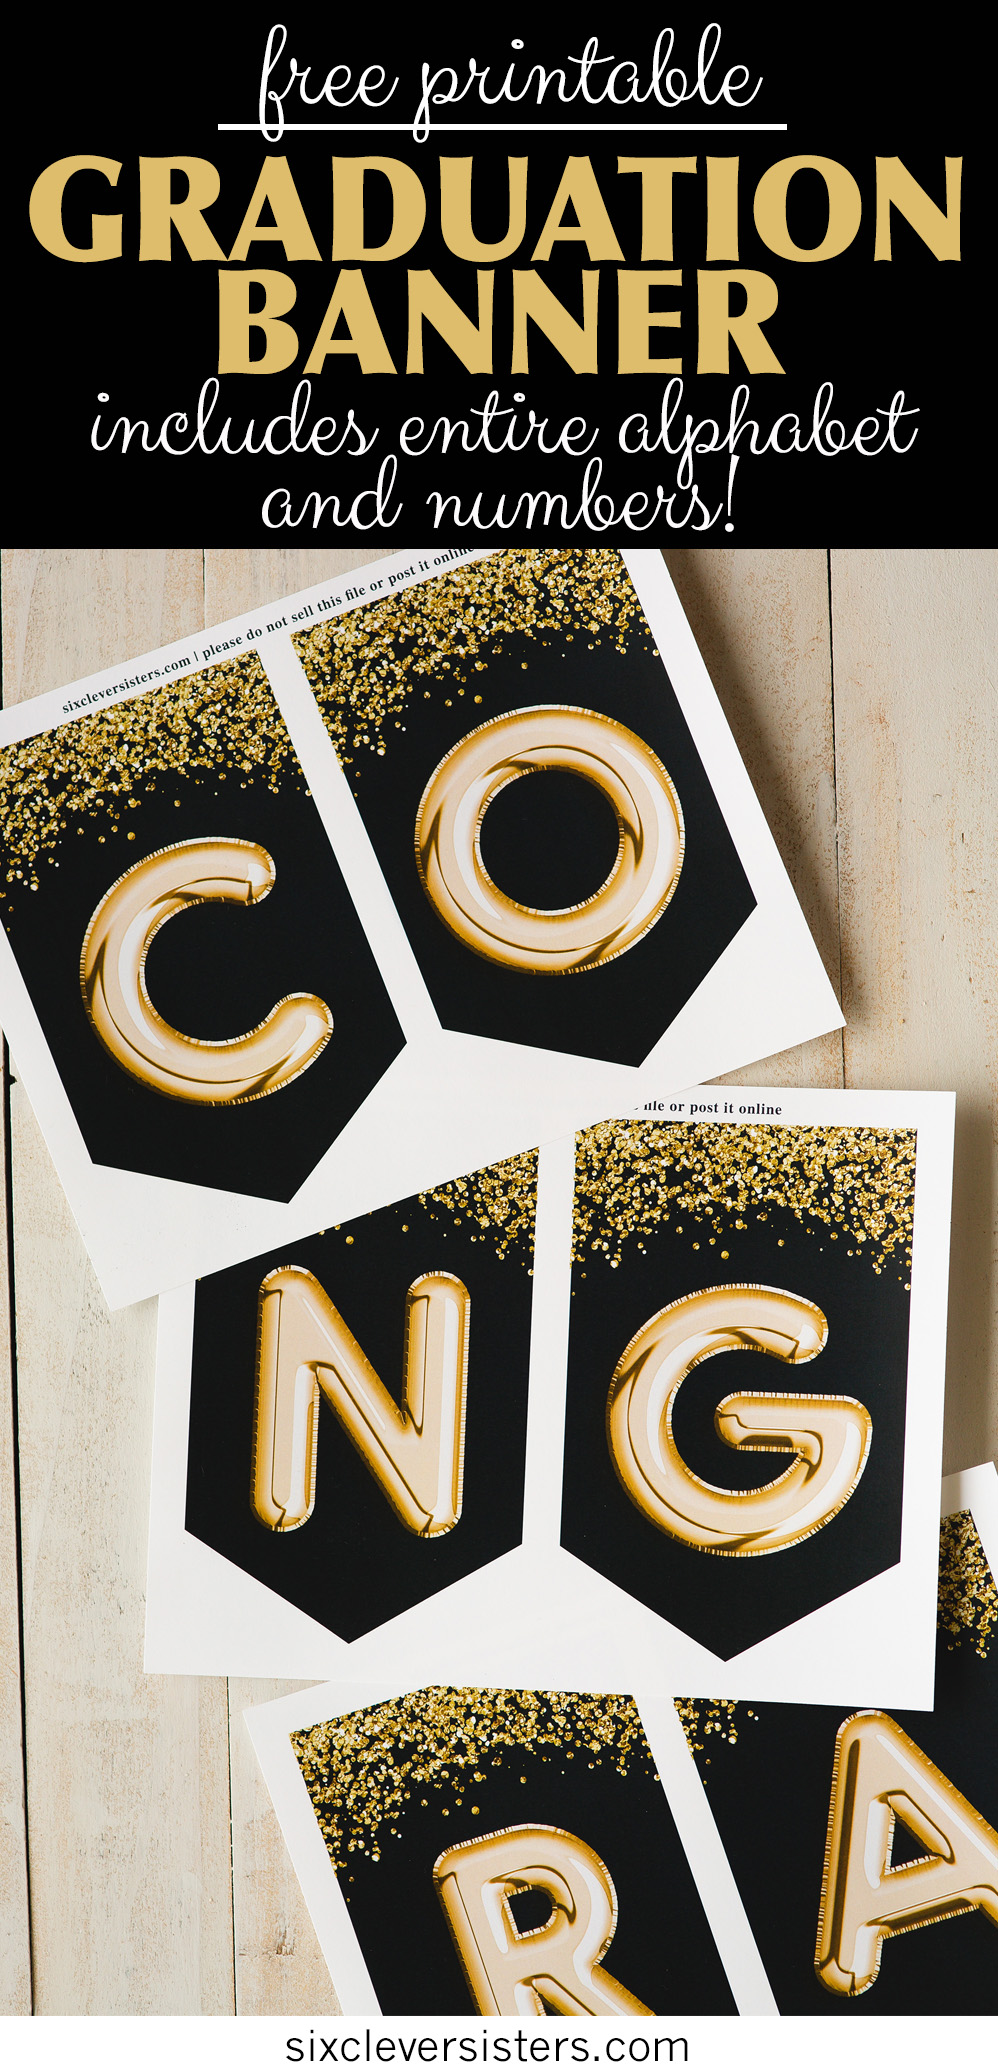 image relating to Printable Graduation Decorations named Commencement banner, Black and Gold - Totally free Printable - 6